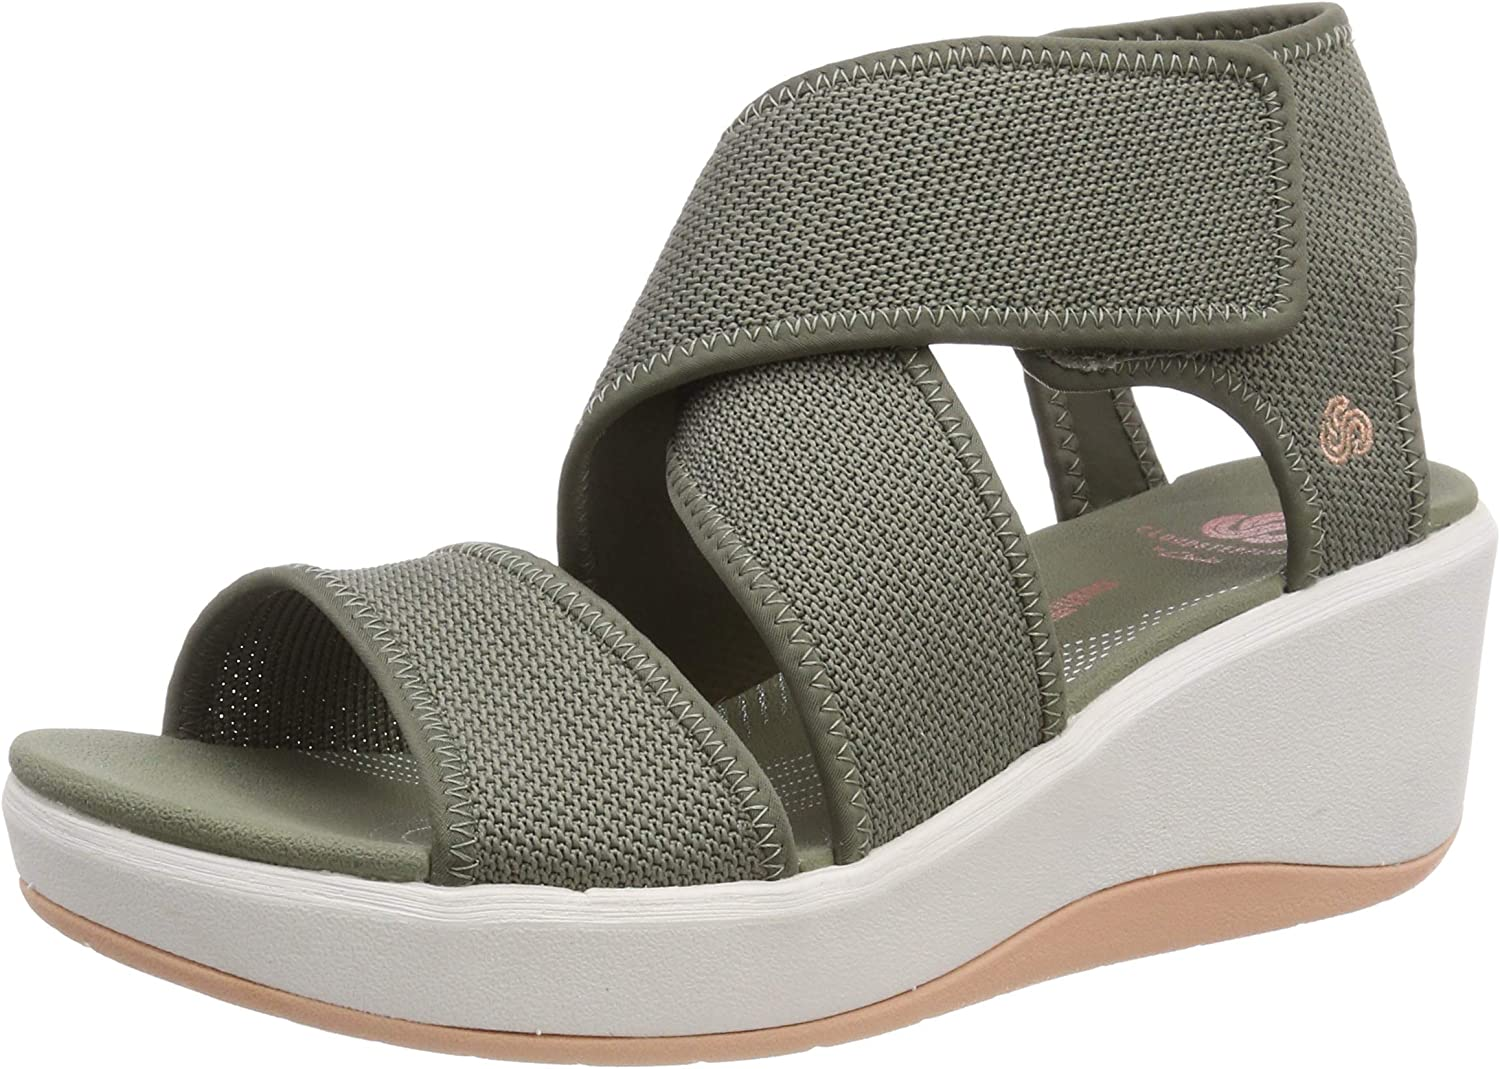 Clarks Women's Step Cali Palm Low-Top Sneakers Green (Olive -) 2 UK